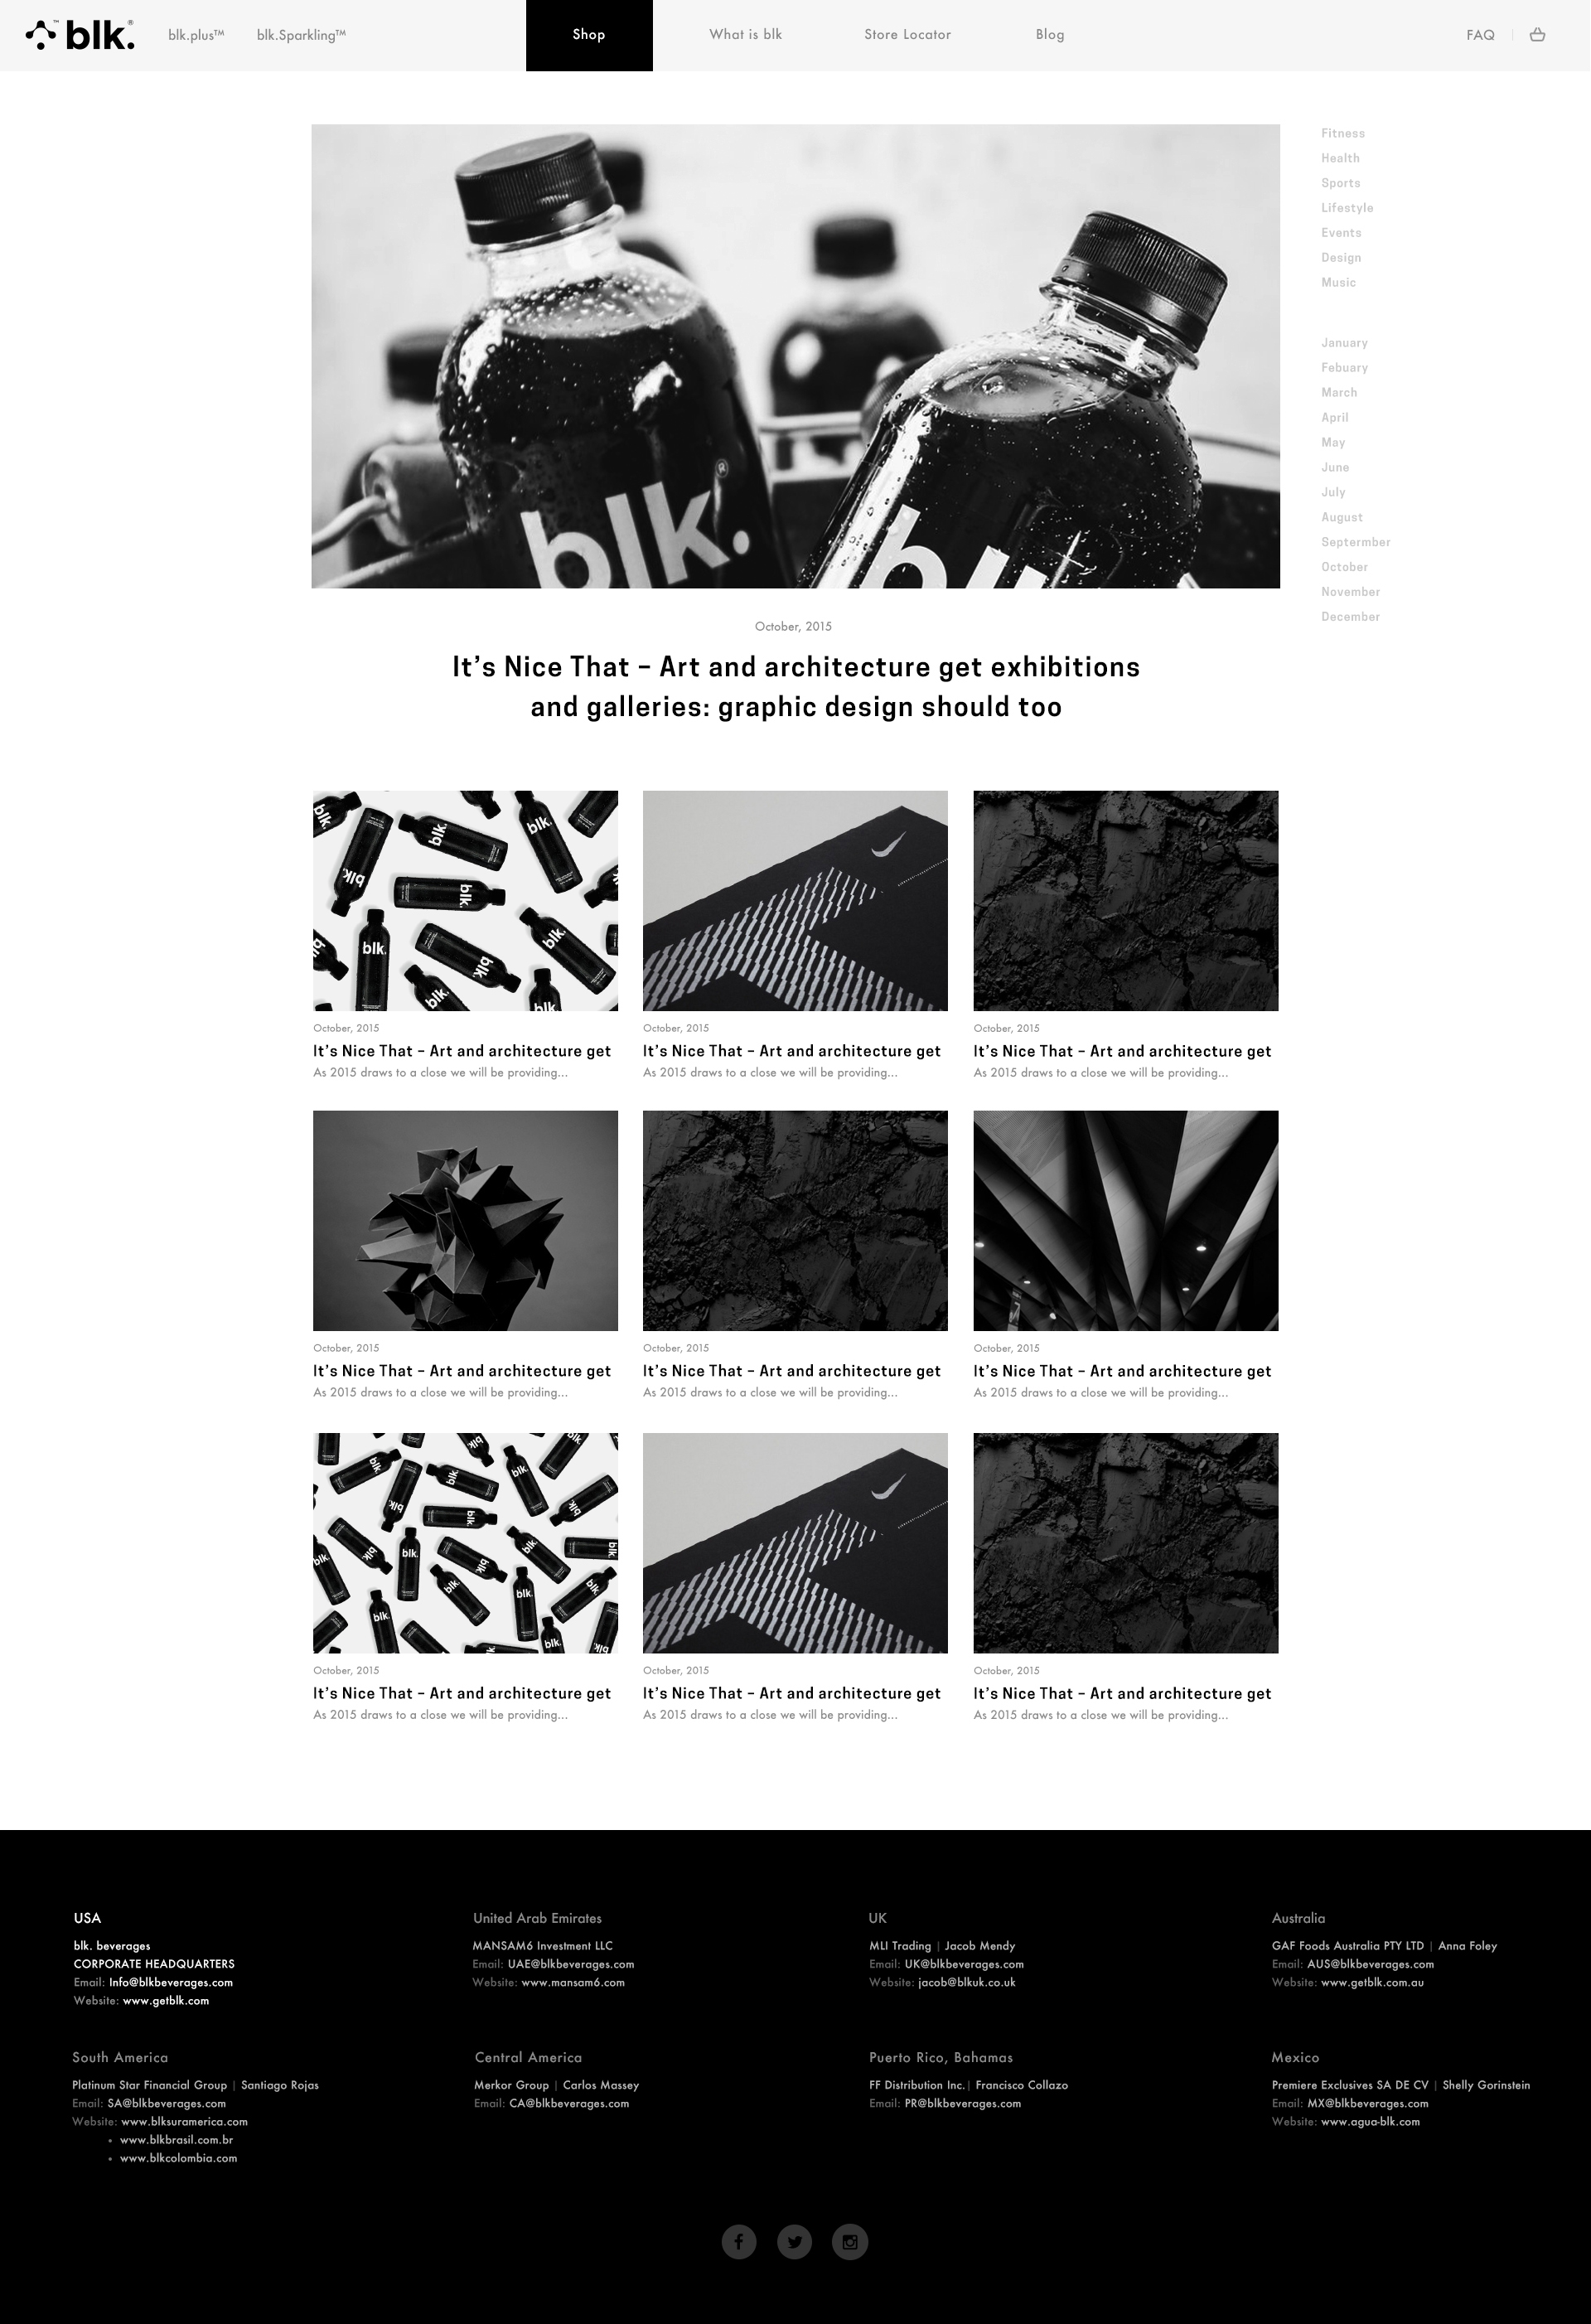 Blk Web Design